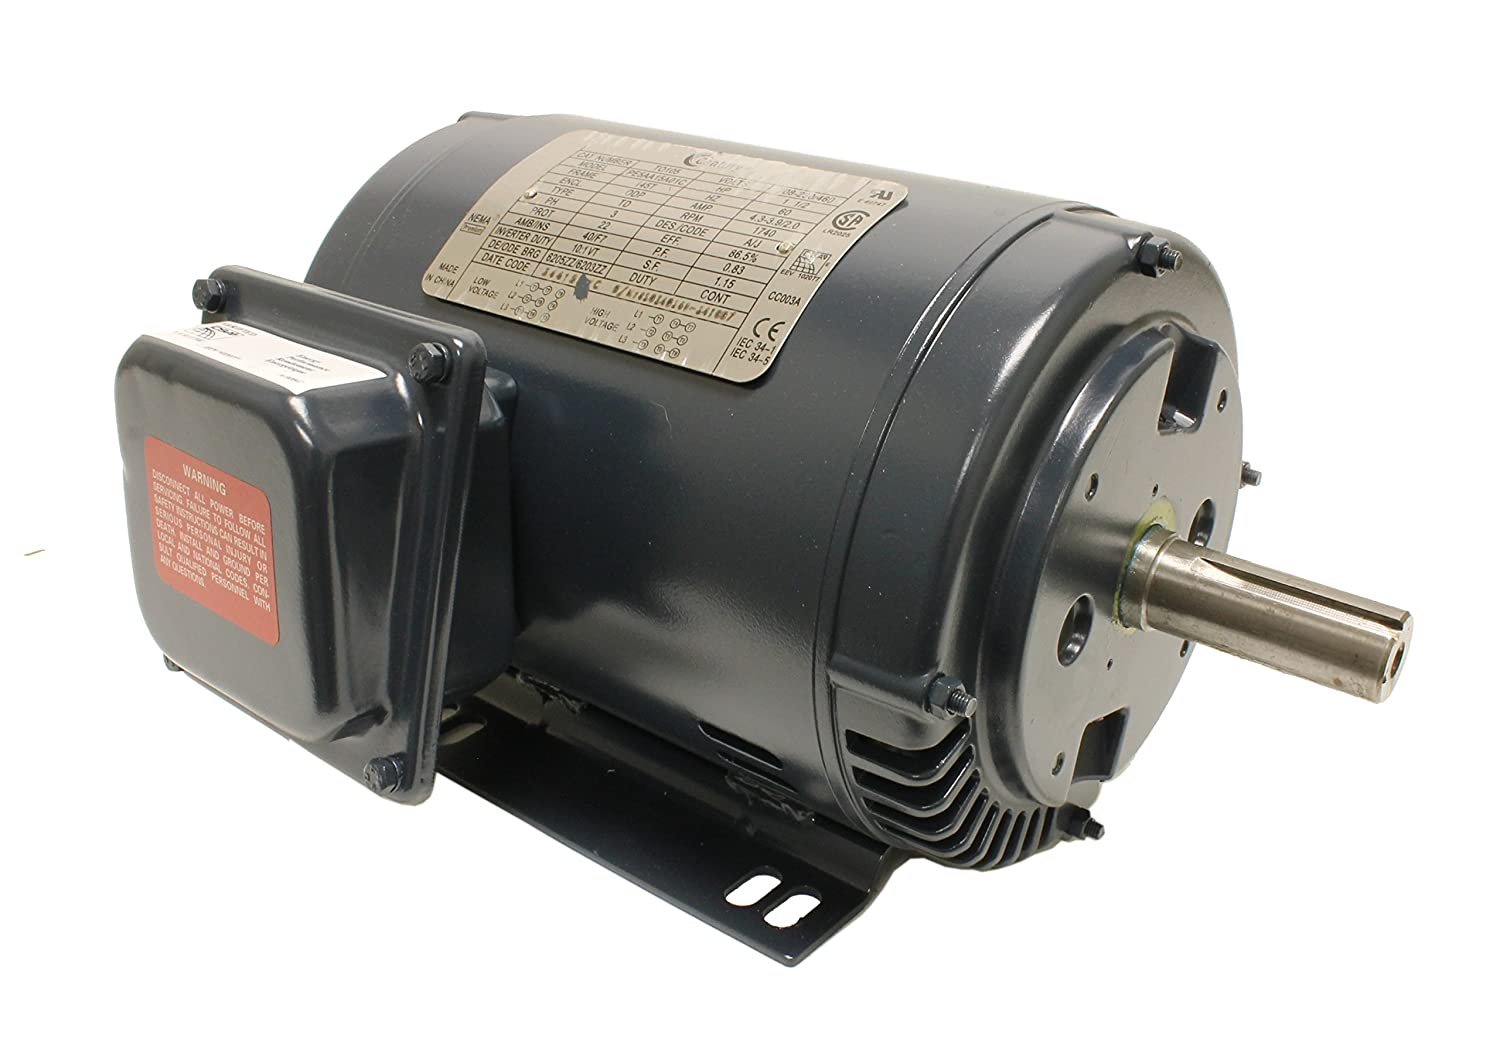 Century to105 model electric close coupled pump motor 1 5 for Electric motor 1 5 hp